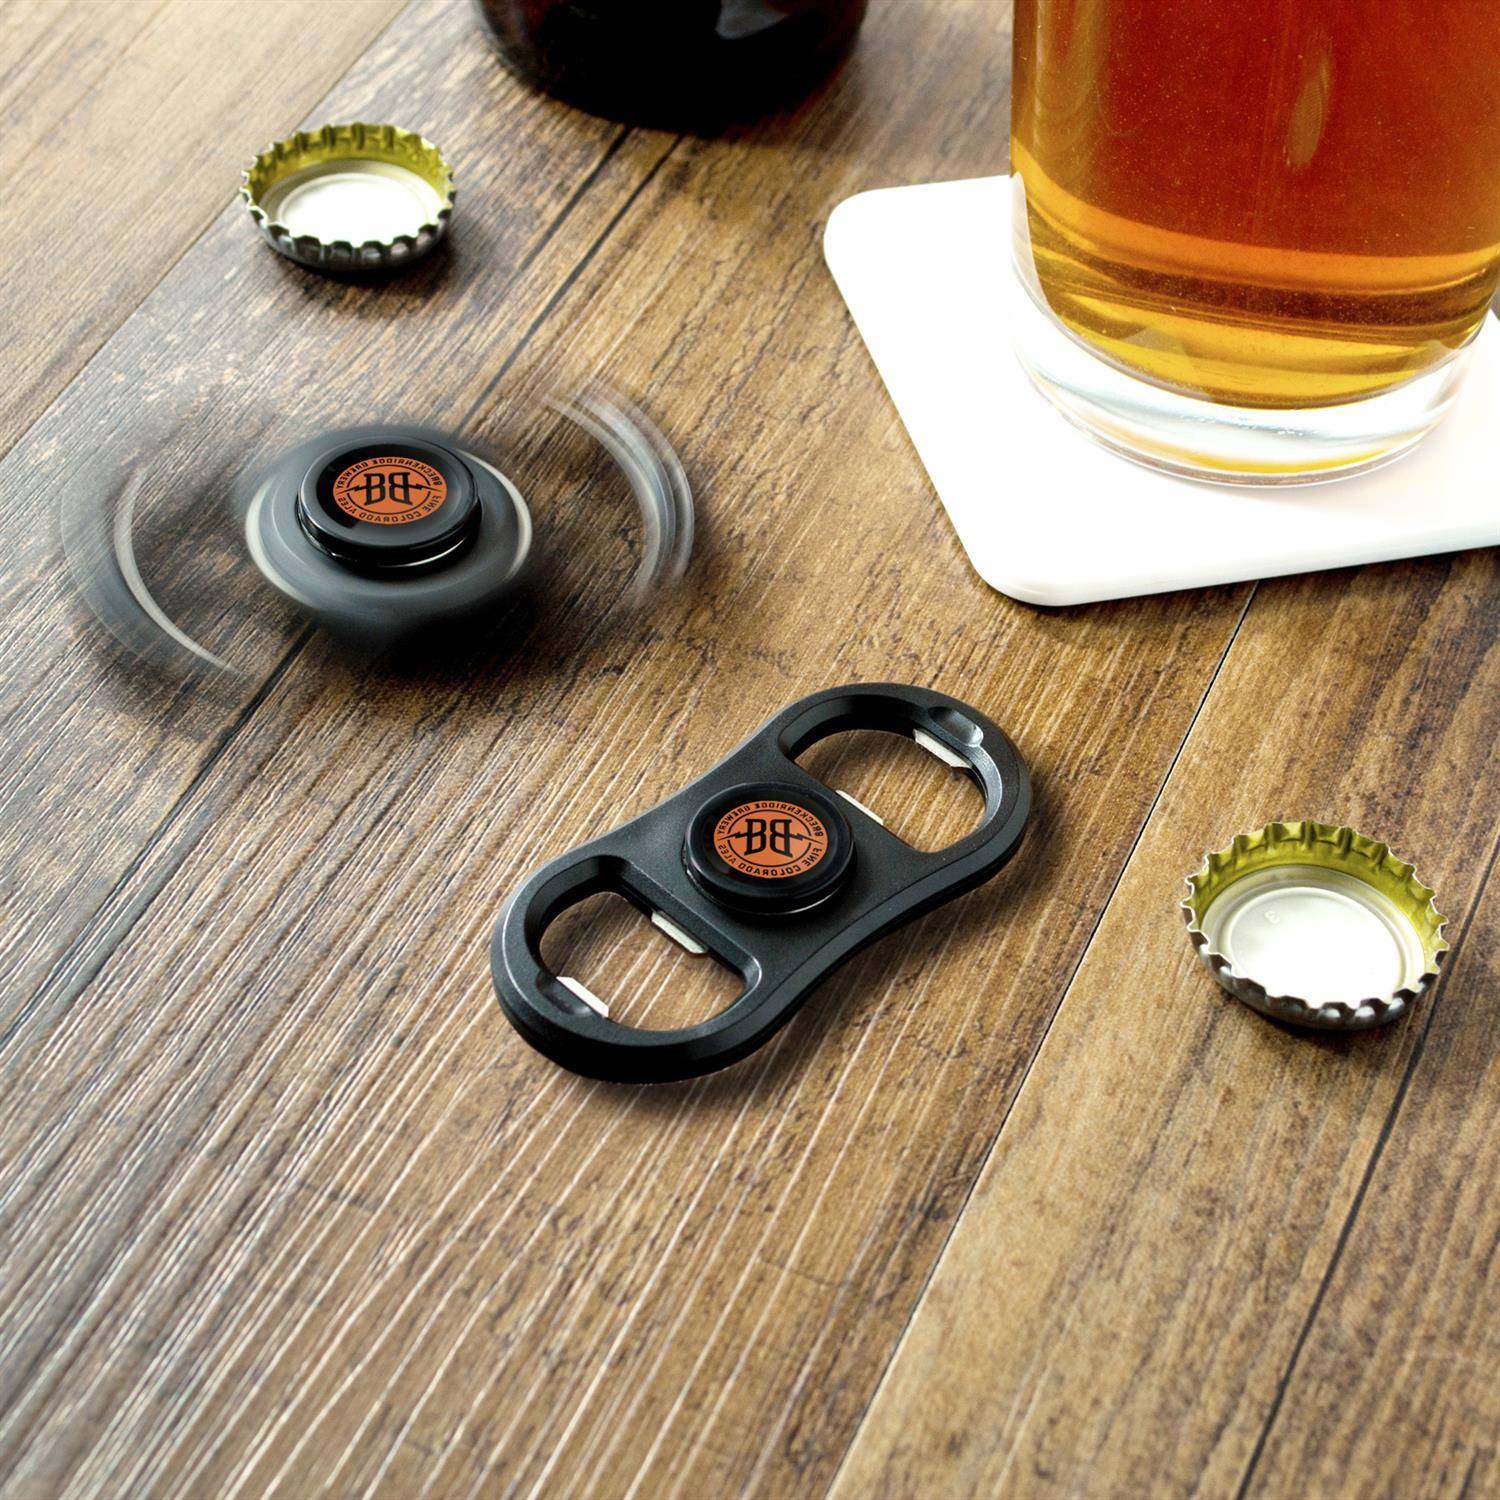 2536 - Double Duty Bottle Opener